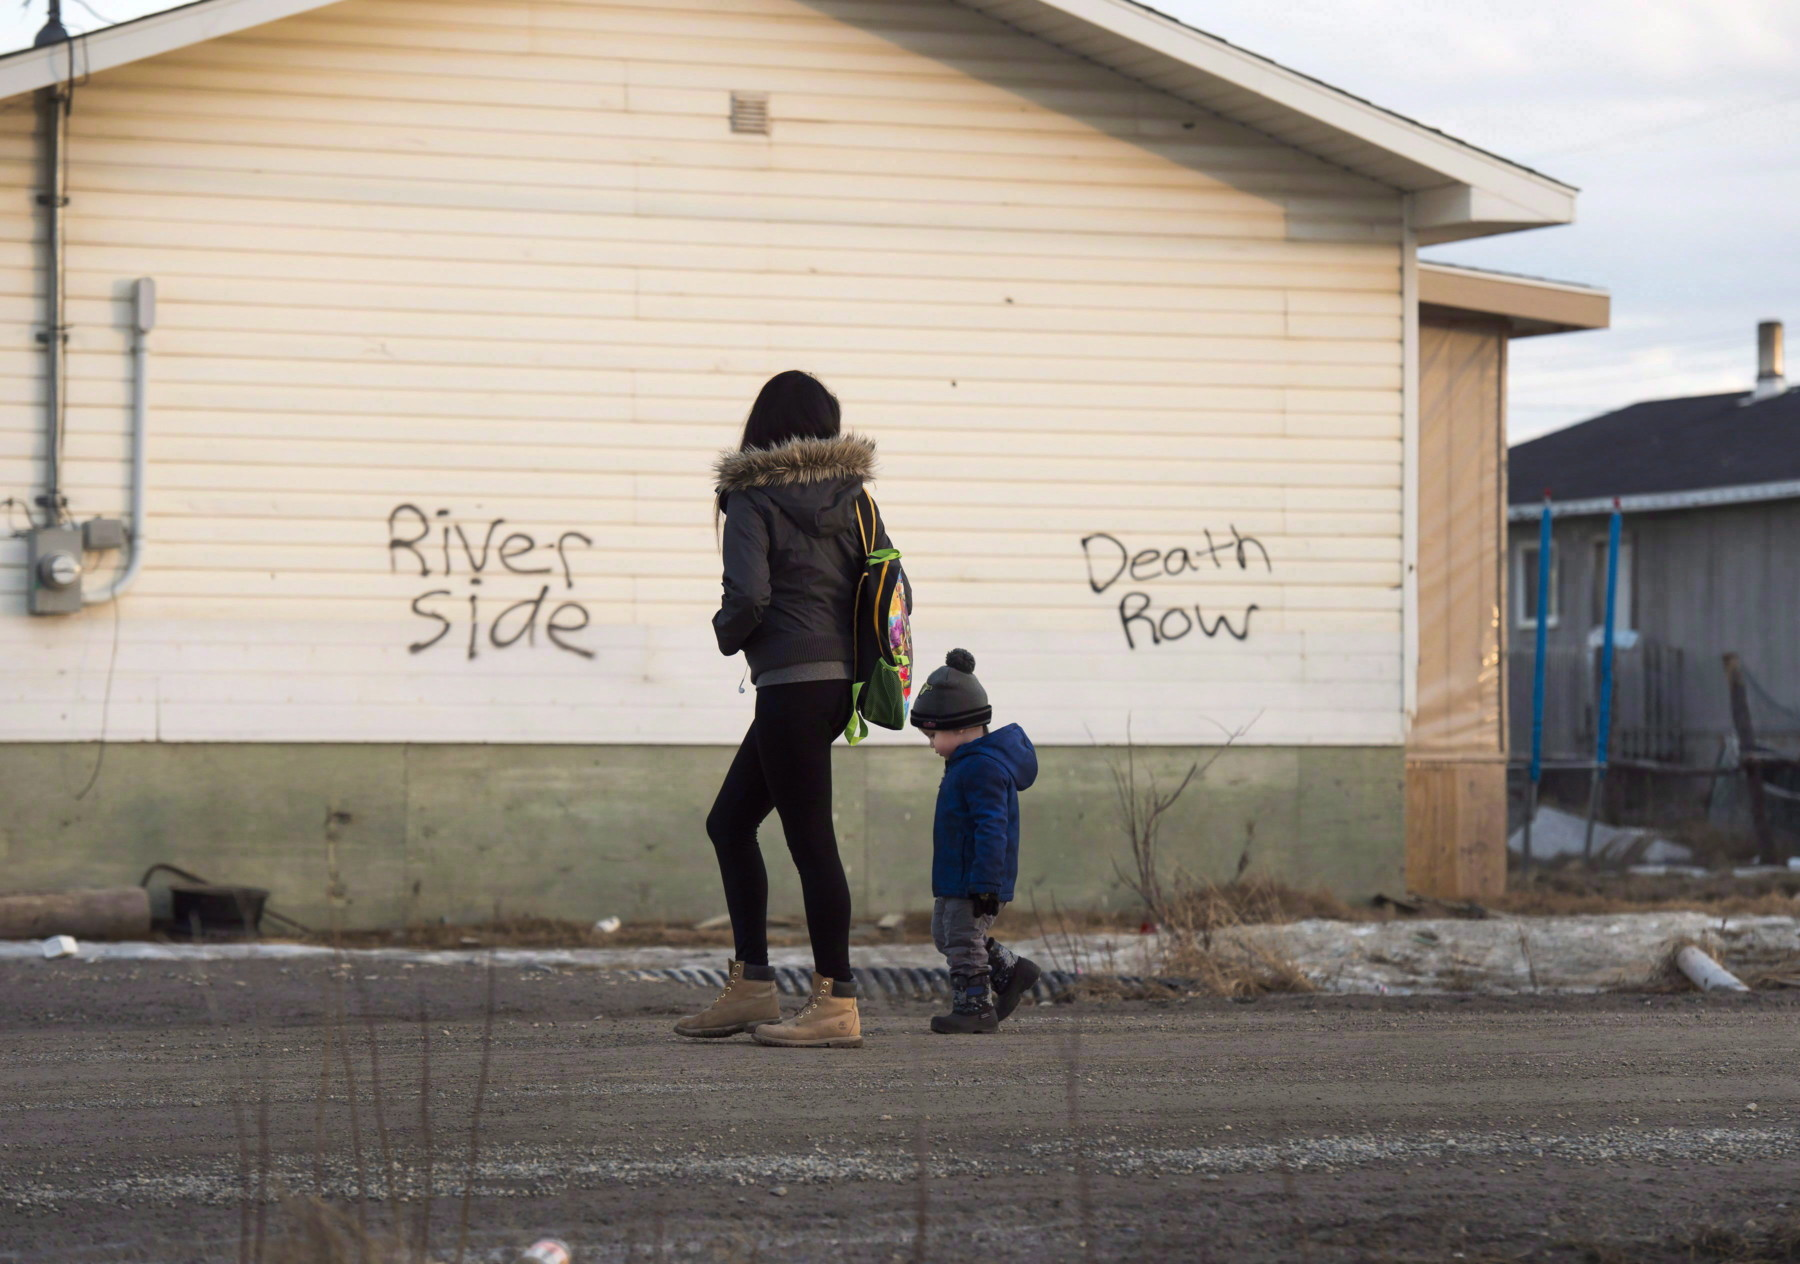 A woman and a child walk through the streets in the community of Attawapiskat, Ont., on April 16, 2016. THE CANADIAN PRESS/Nathan Denette lutheran indian ministries native news